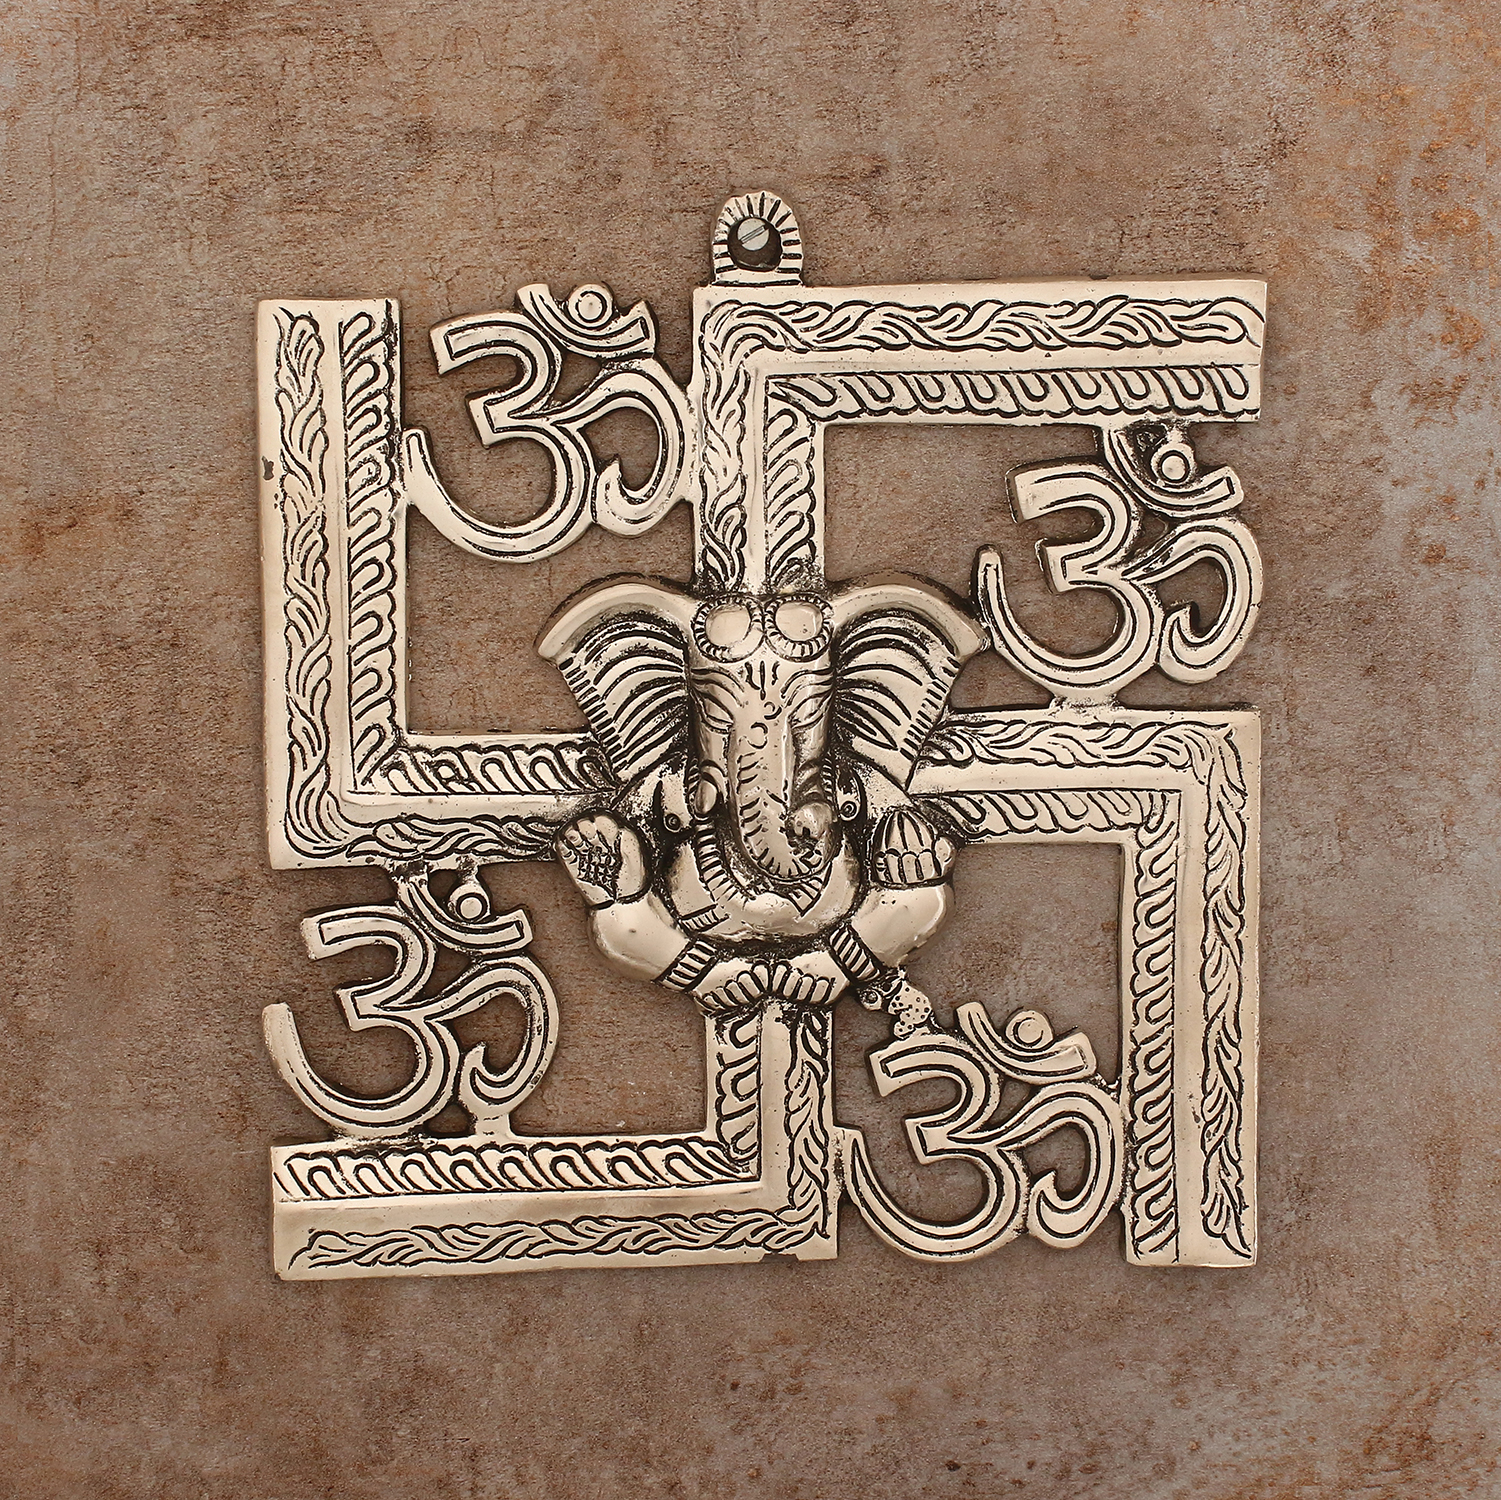 Lord Ganesha on Om Swastik Metal Silver Wall Hanging Indian Home Decor